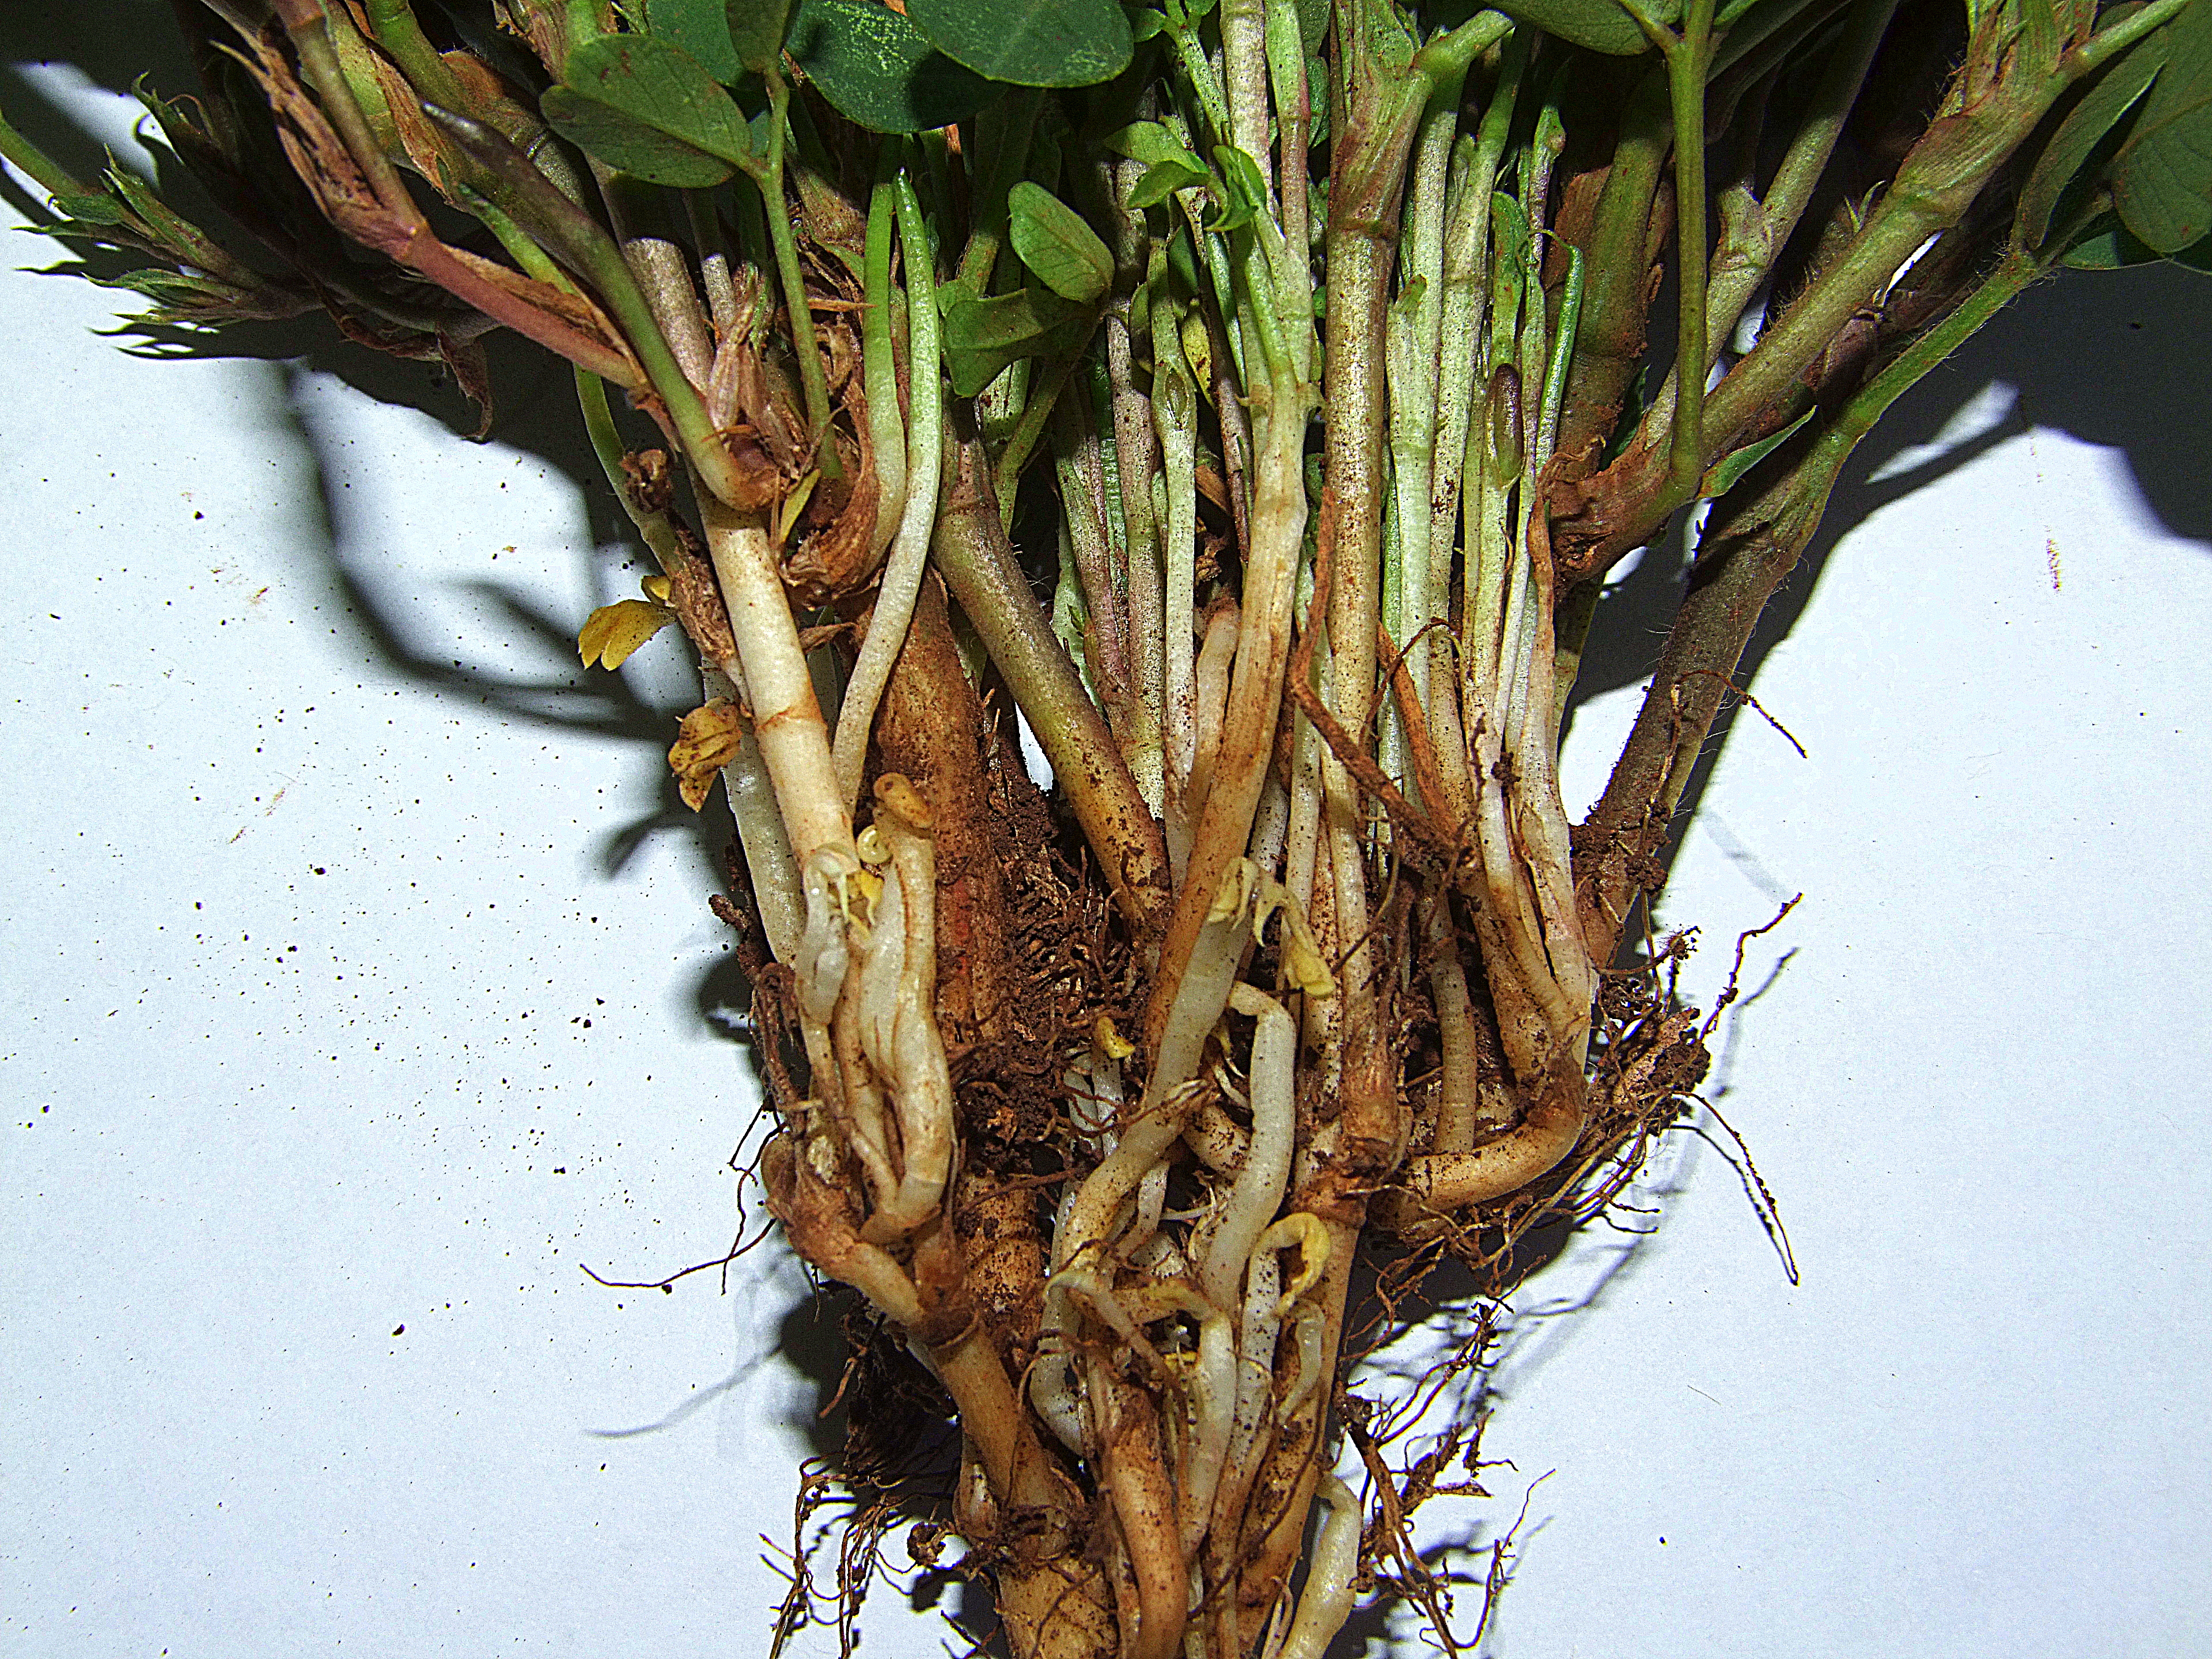 Phytoplasma in peanuts - upwardly-growing deformed pegs that did not produce any pods.